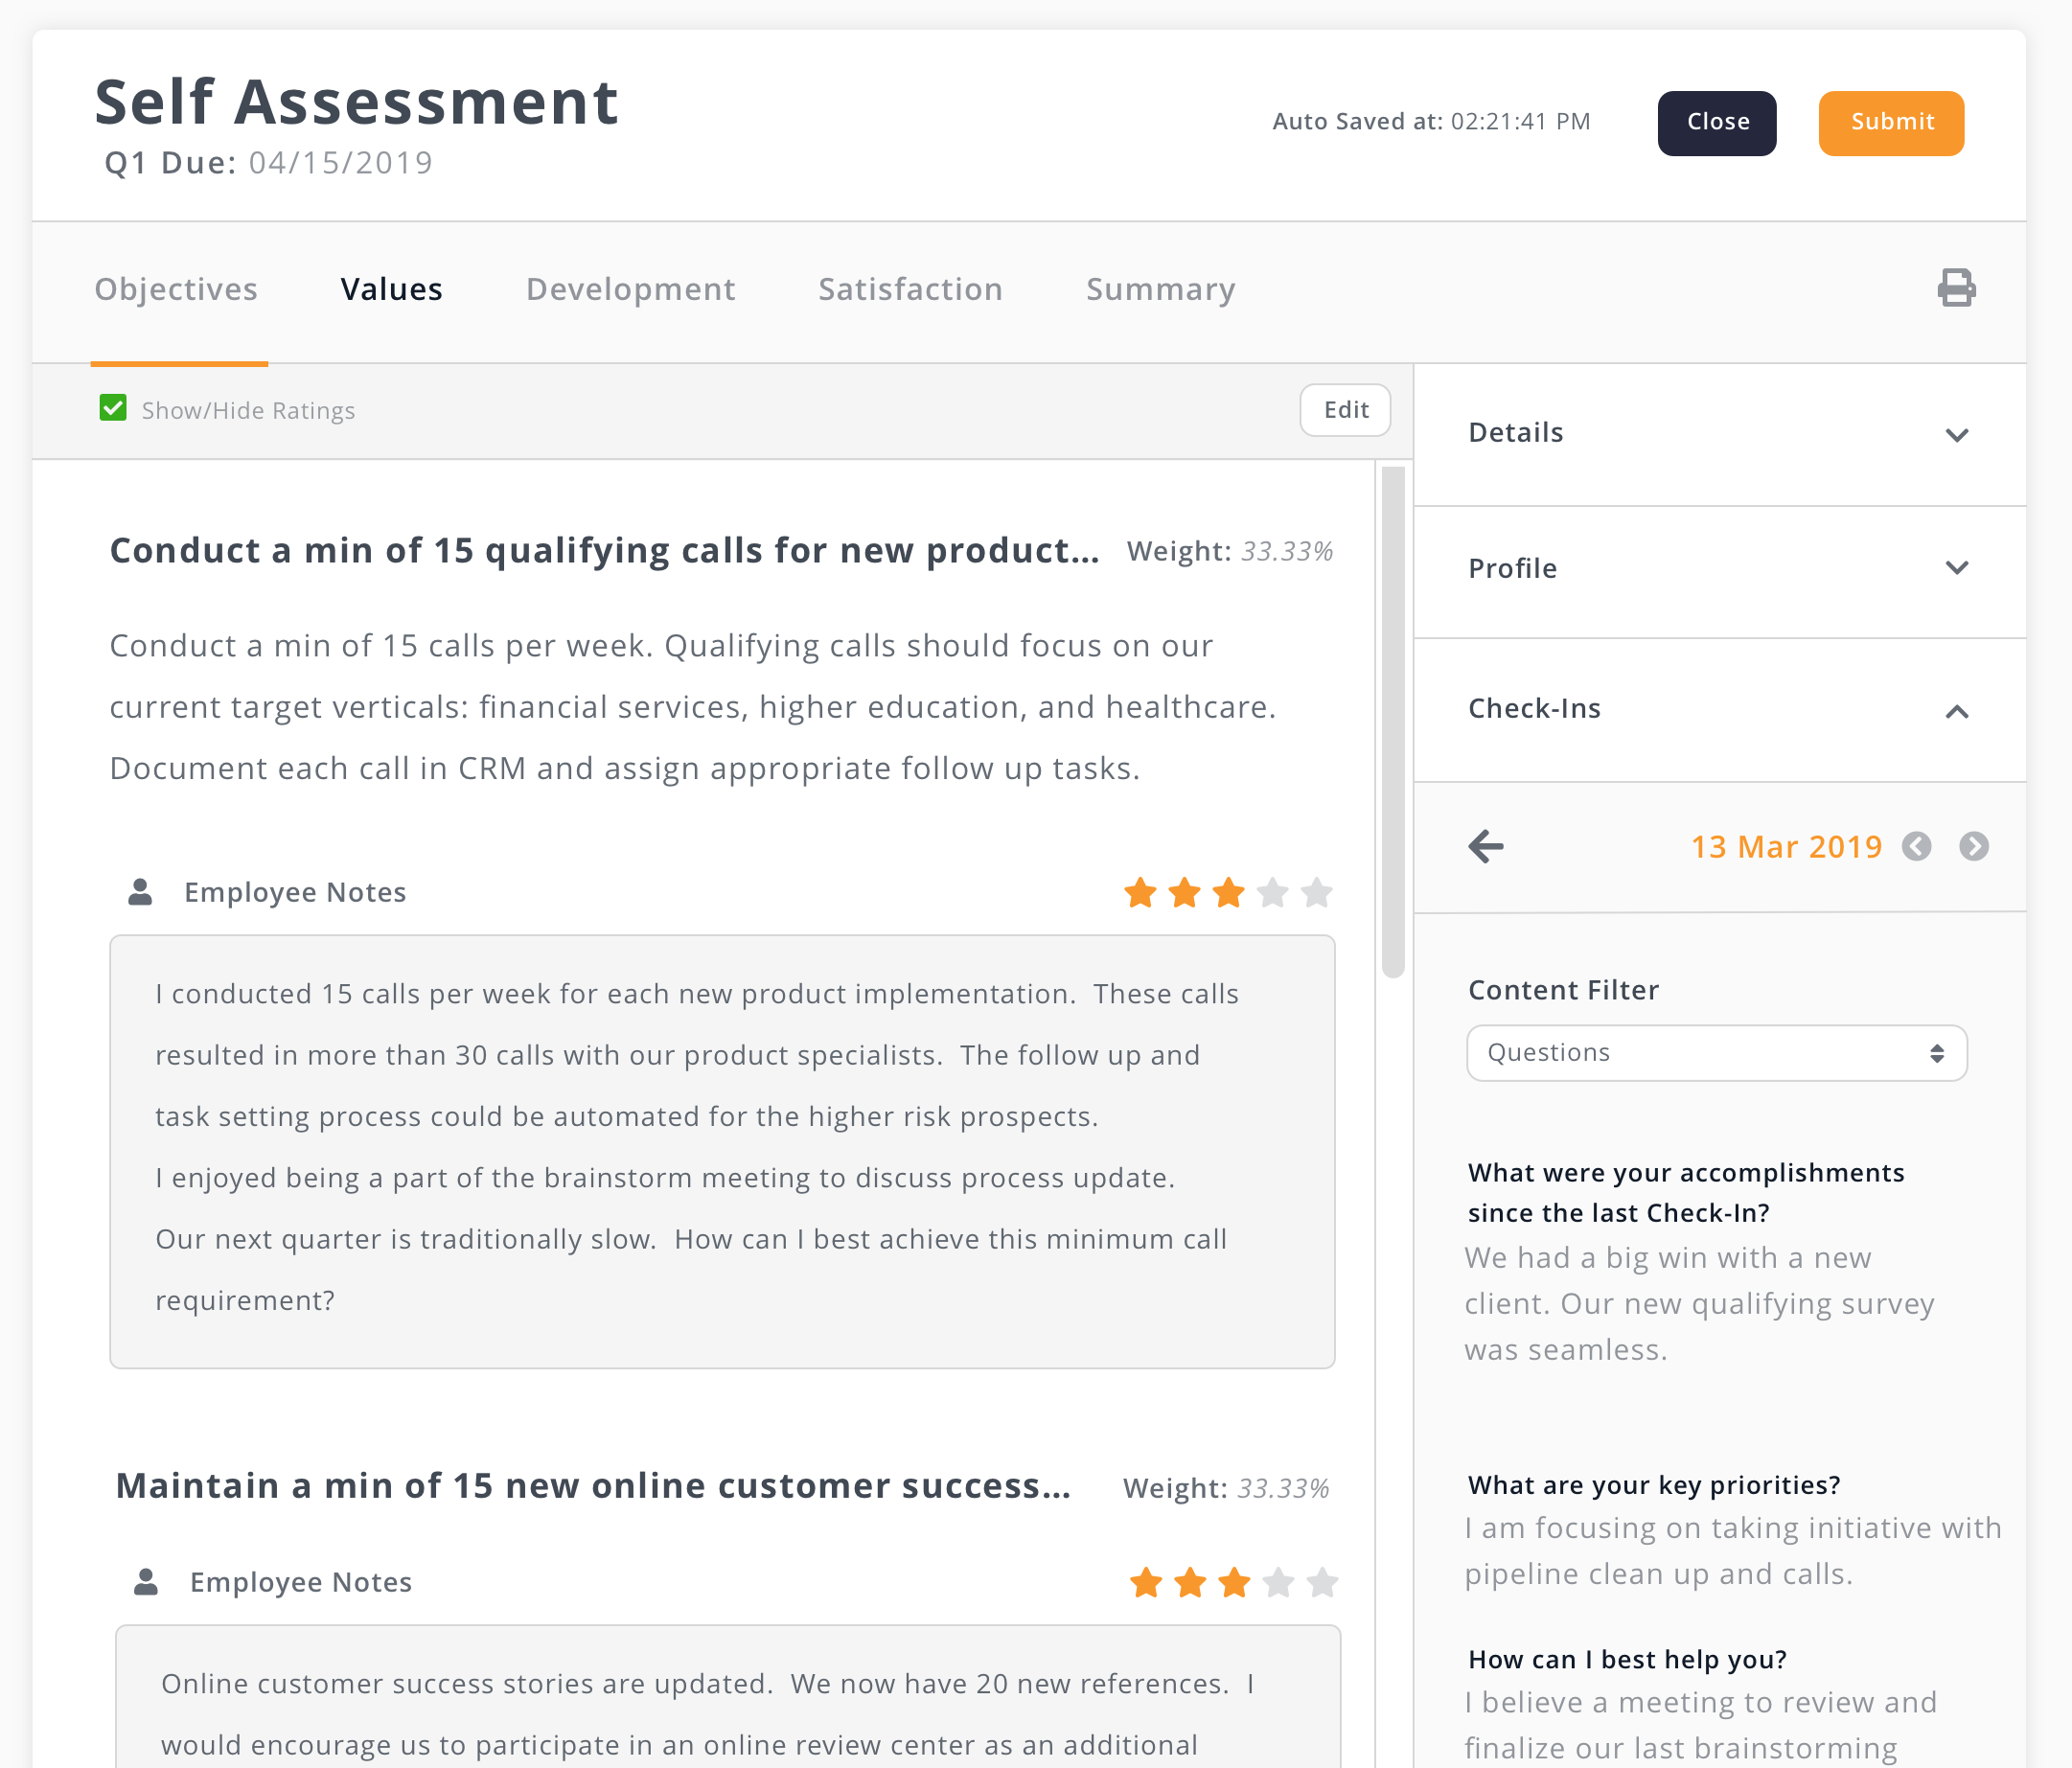 Self-Assessment Screenshot